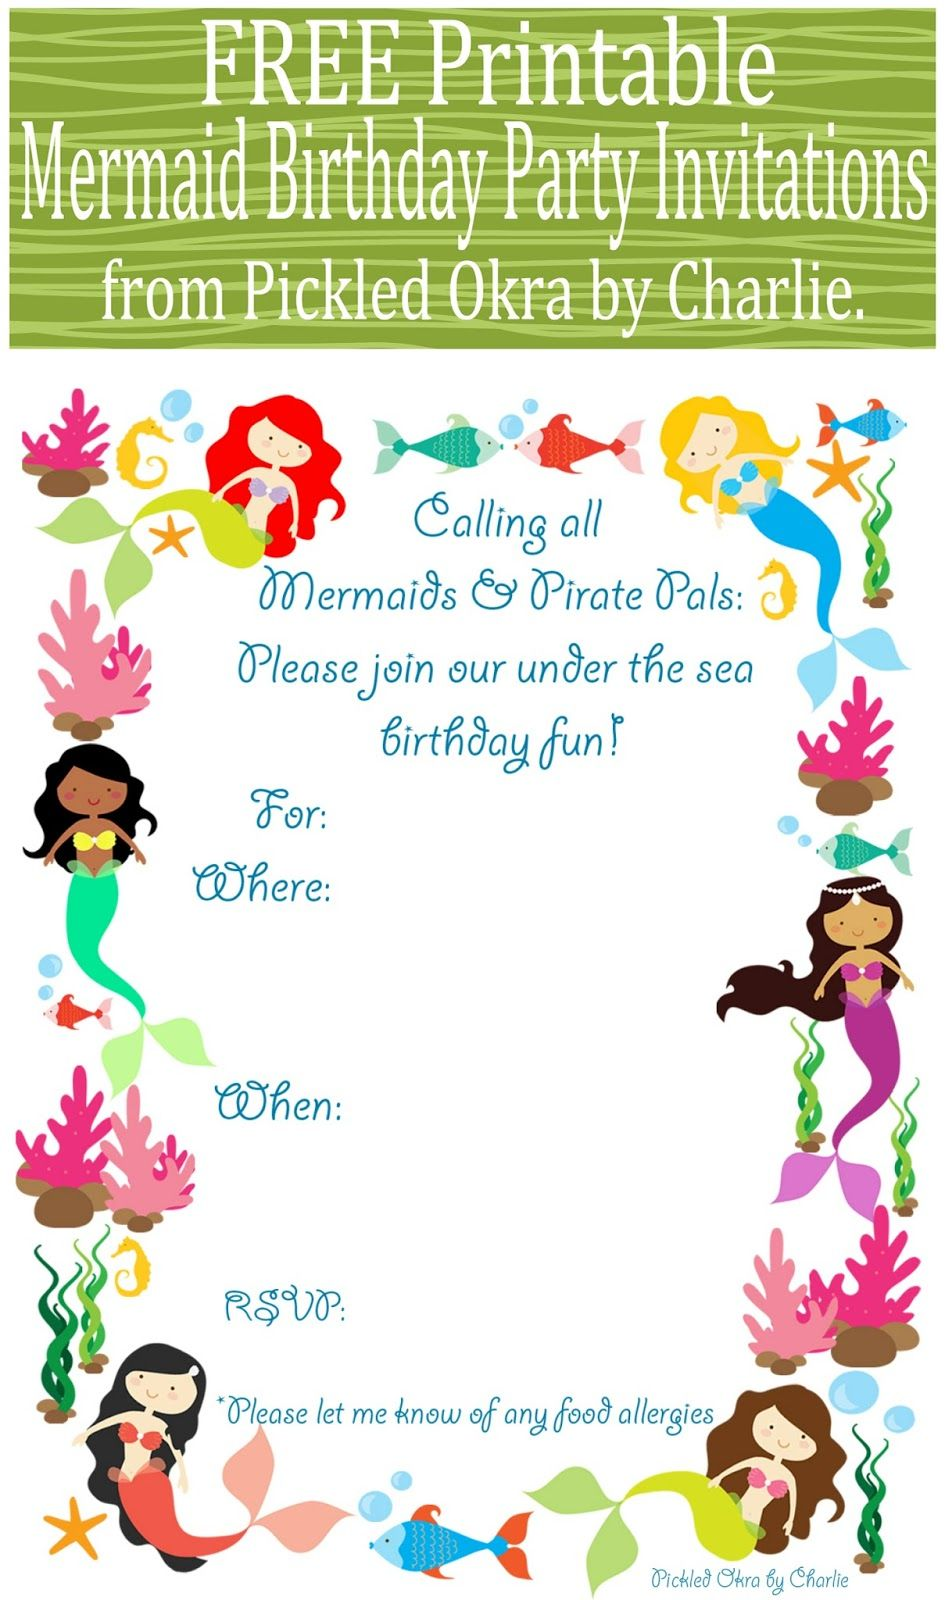 Pickled okra by charlie mermaid bithday party invitations free free printable mermaid birthday party invitations for your next under the sea bash filmwisefo